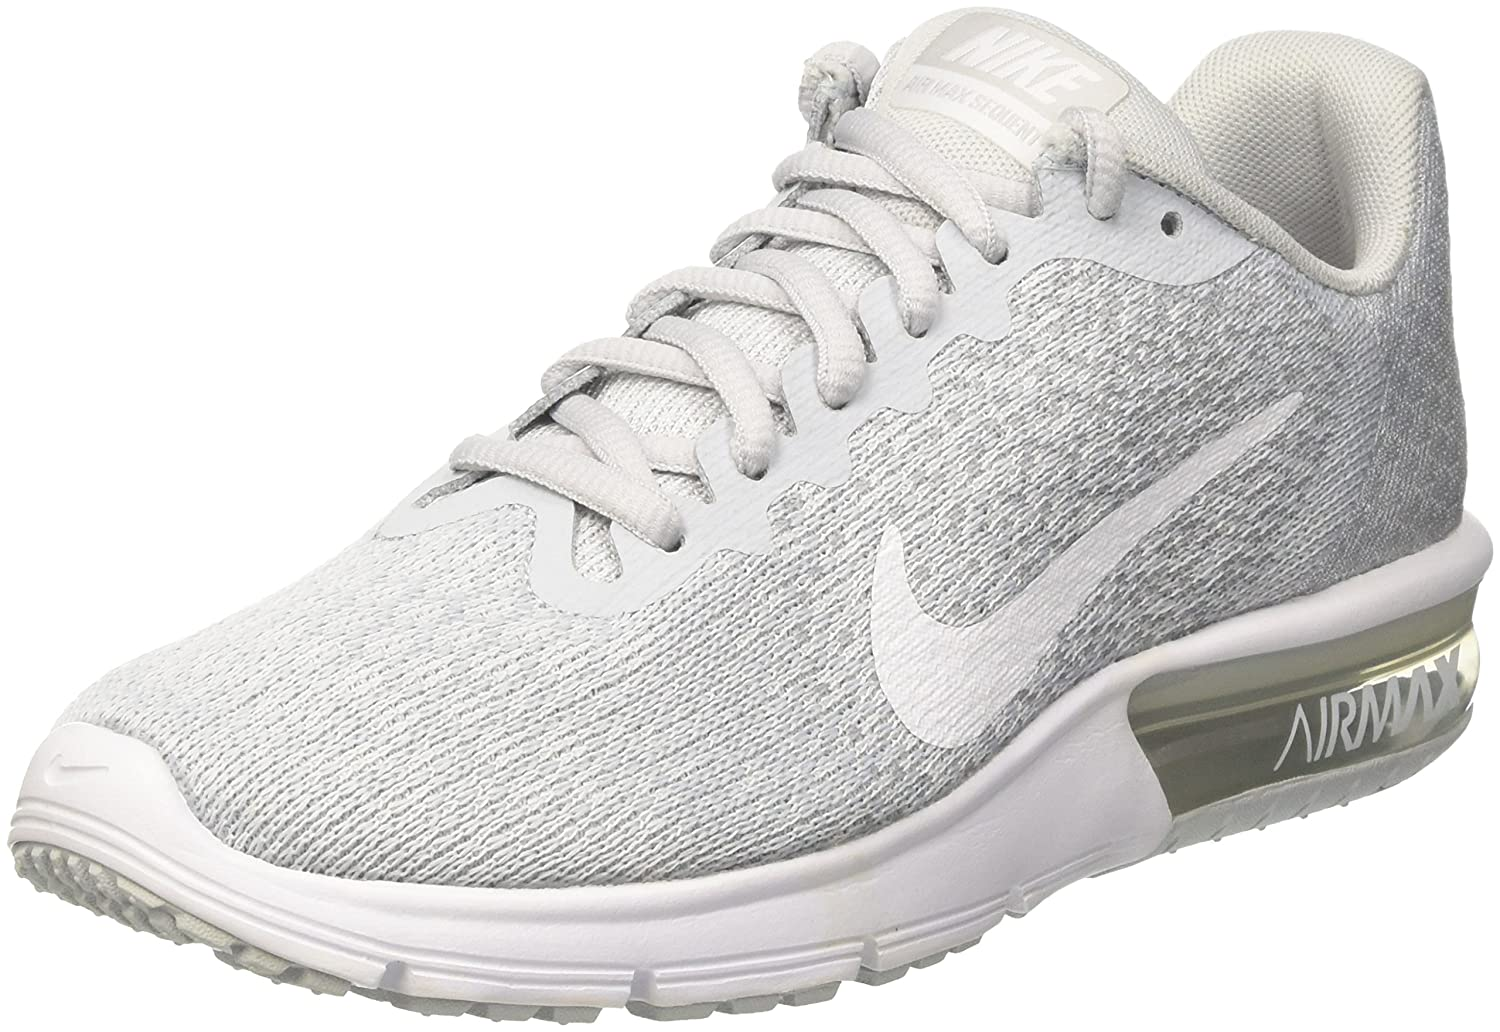 check out b5a7f f392a Amazon.com   Nike Air Max Sequent 2 Pure Platinum White Wolf Grey Women s  Running Shoes Size 7.5   Running